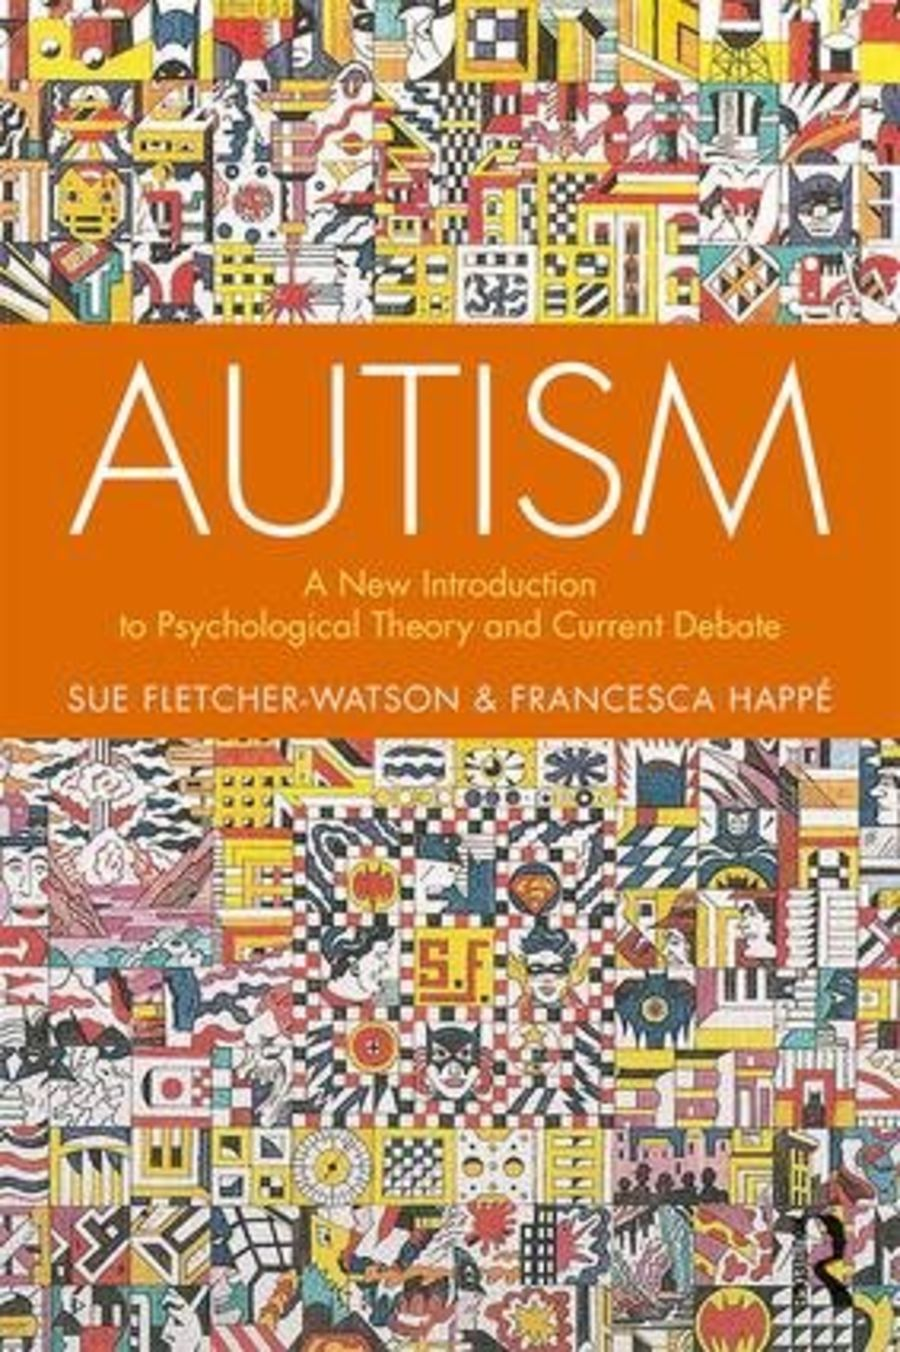 Autism: A New Introduction